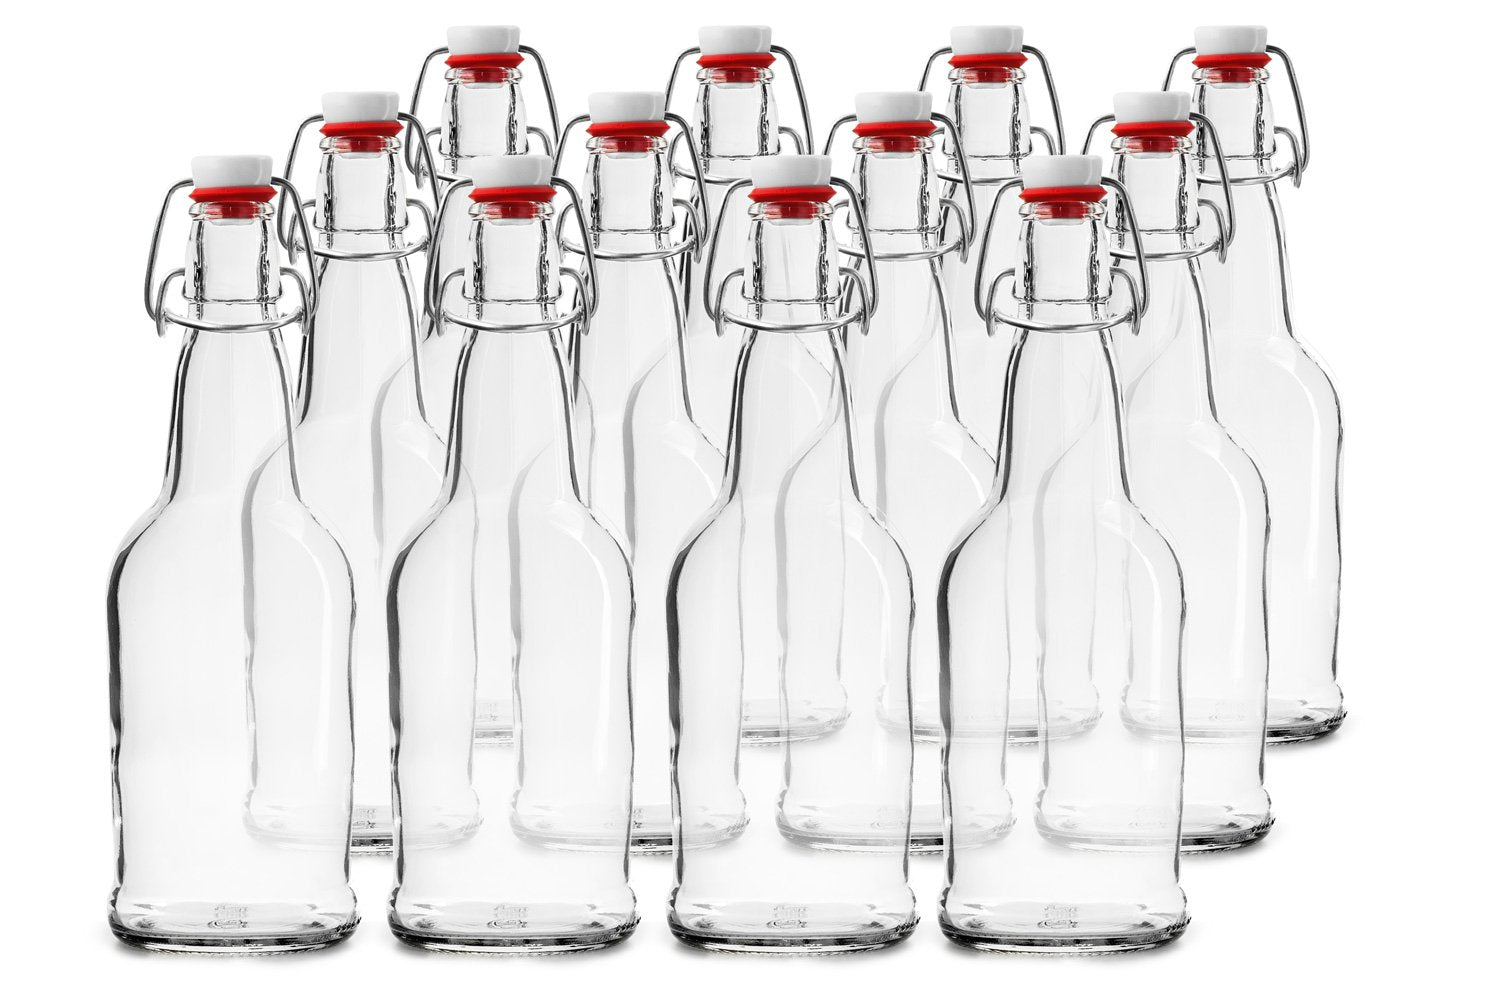 12 PACK 32 oz. Swing Top Clear Bottles